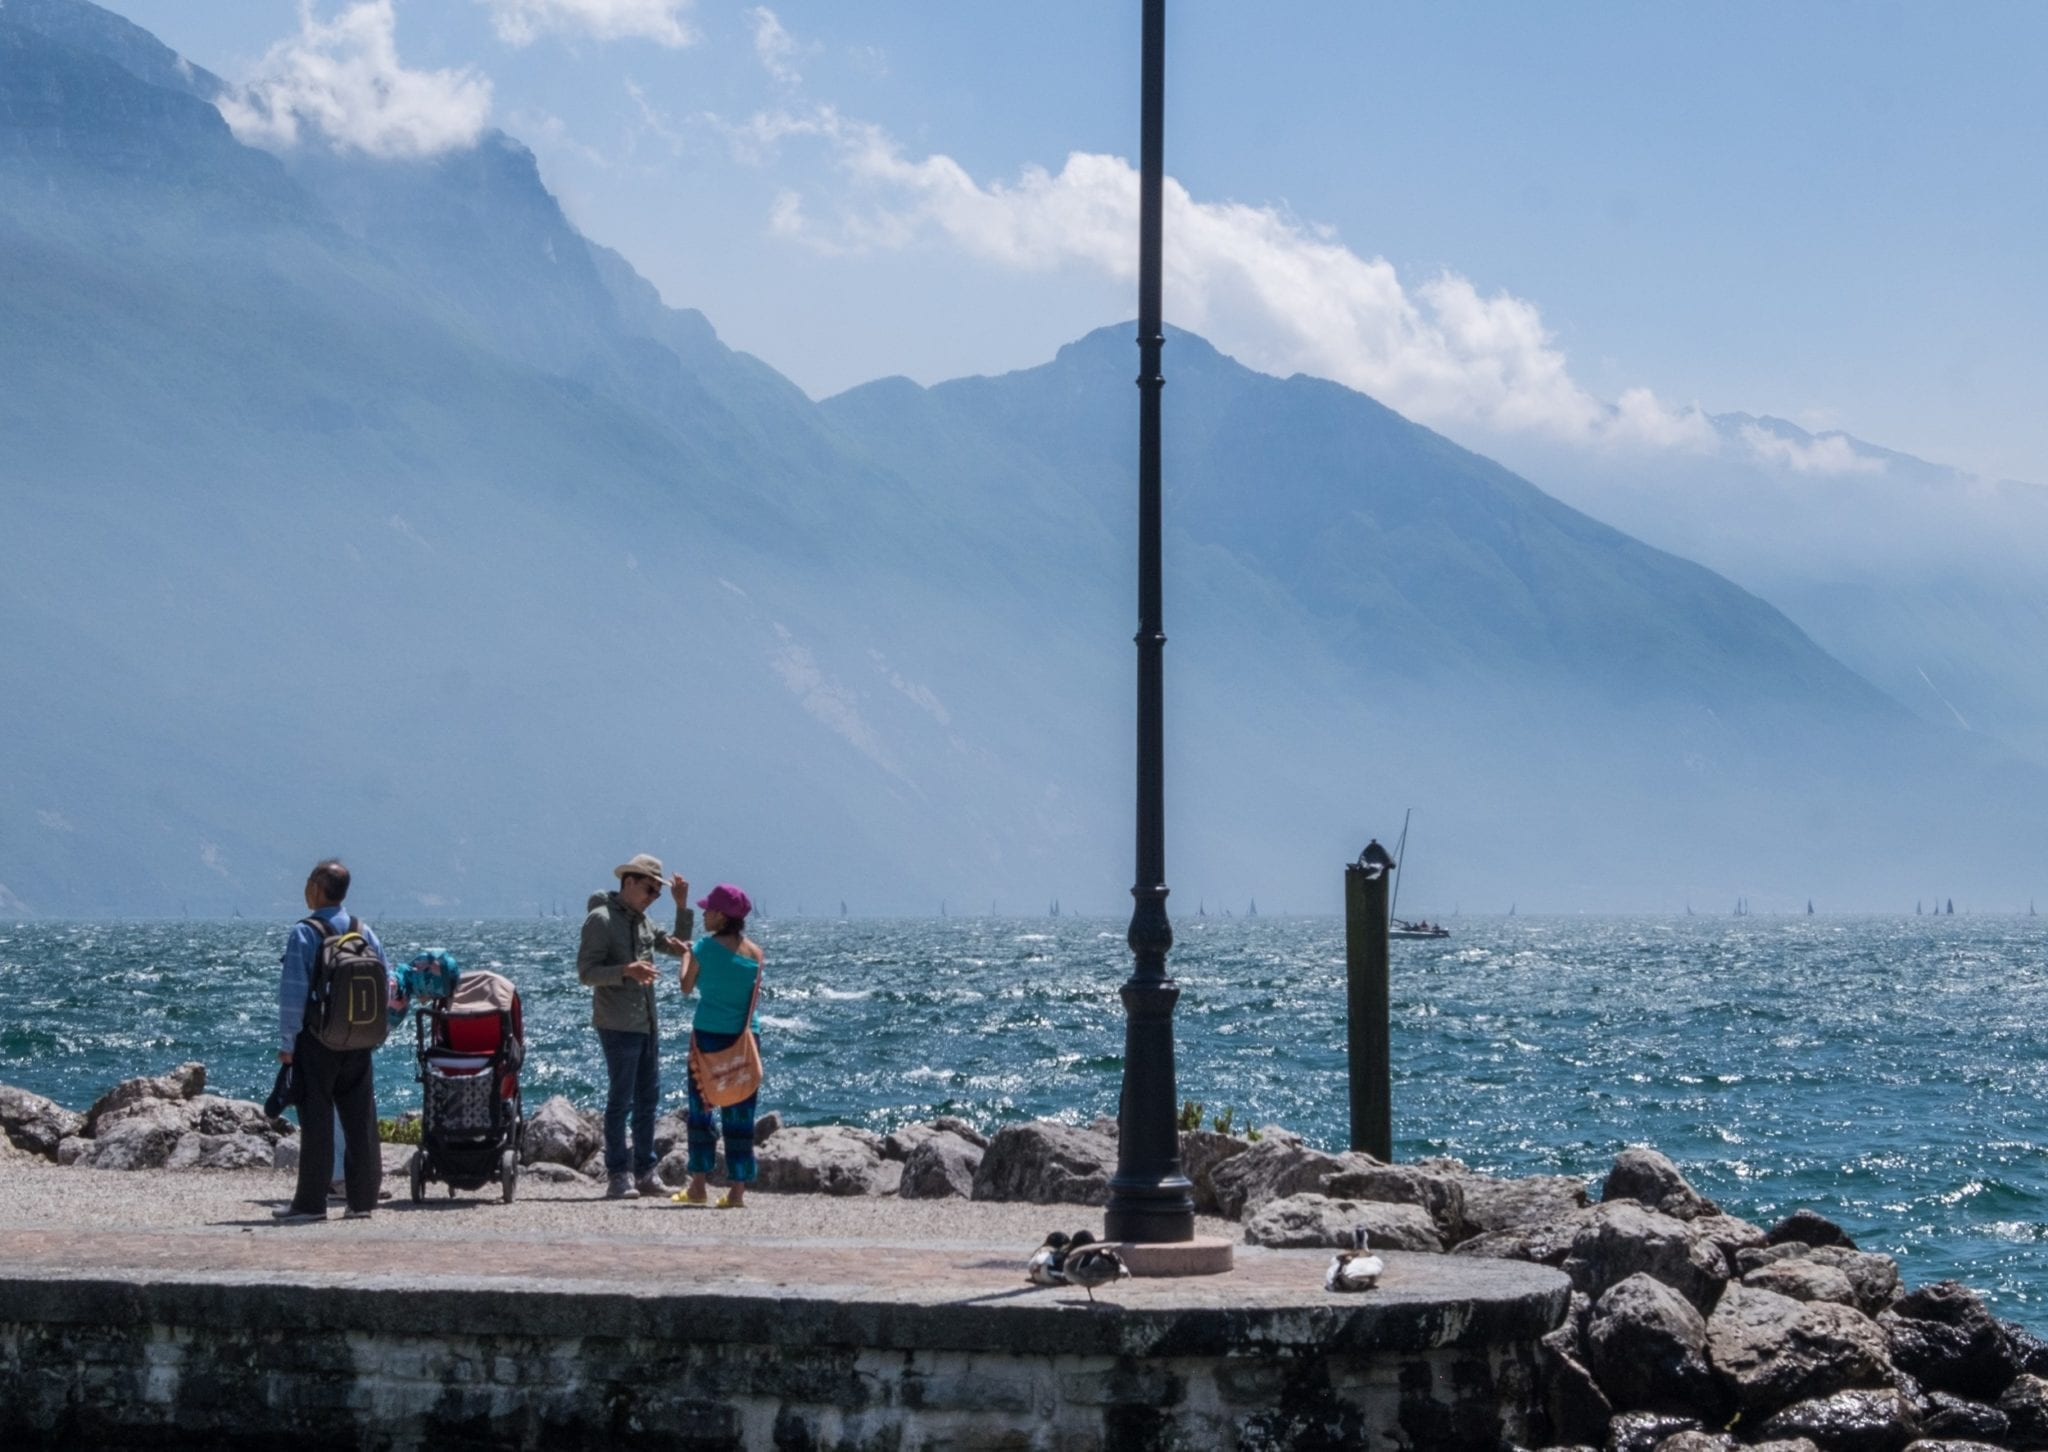 Four adults and a baby carriage stand on a jetty jutting out into the blue Lake Garda, where a windy day is stirring up white caps in the waves. The mountains are jagged in the background and seem to be falling into the lake.